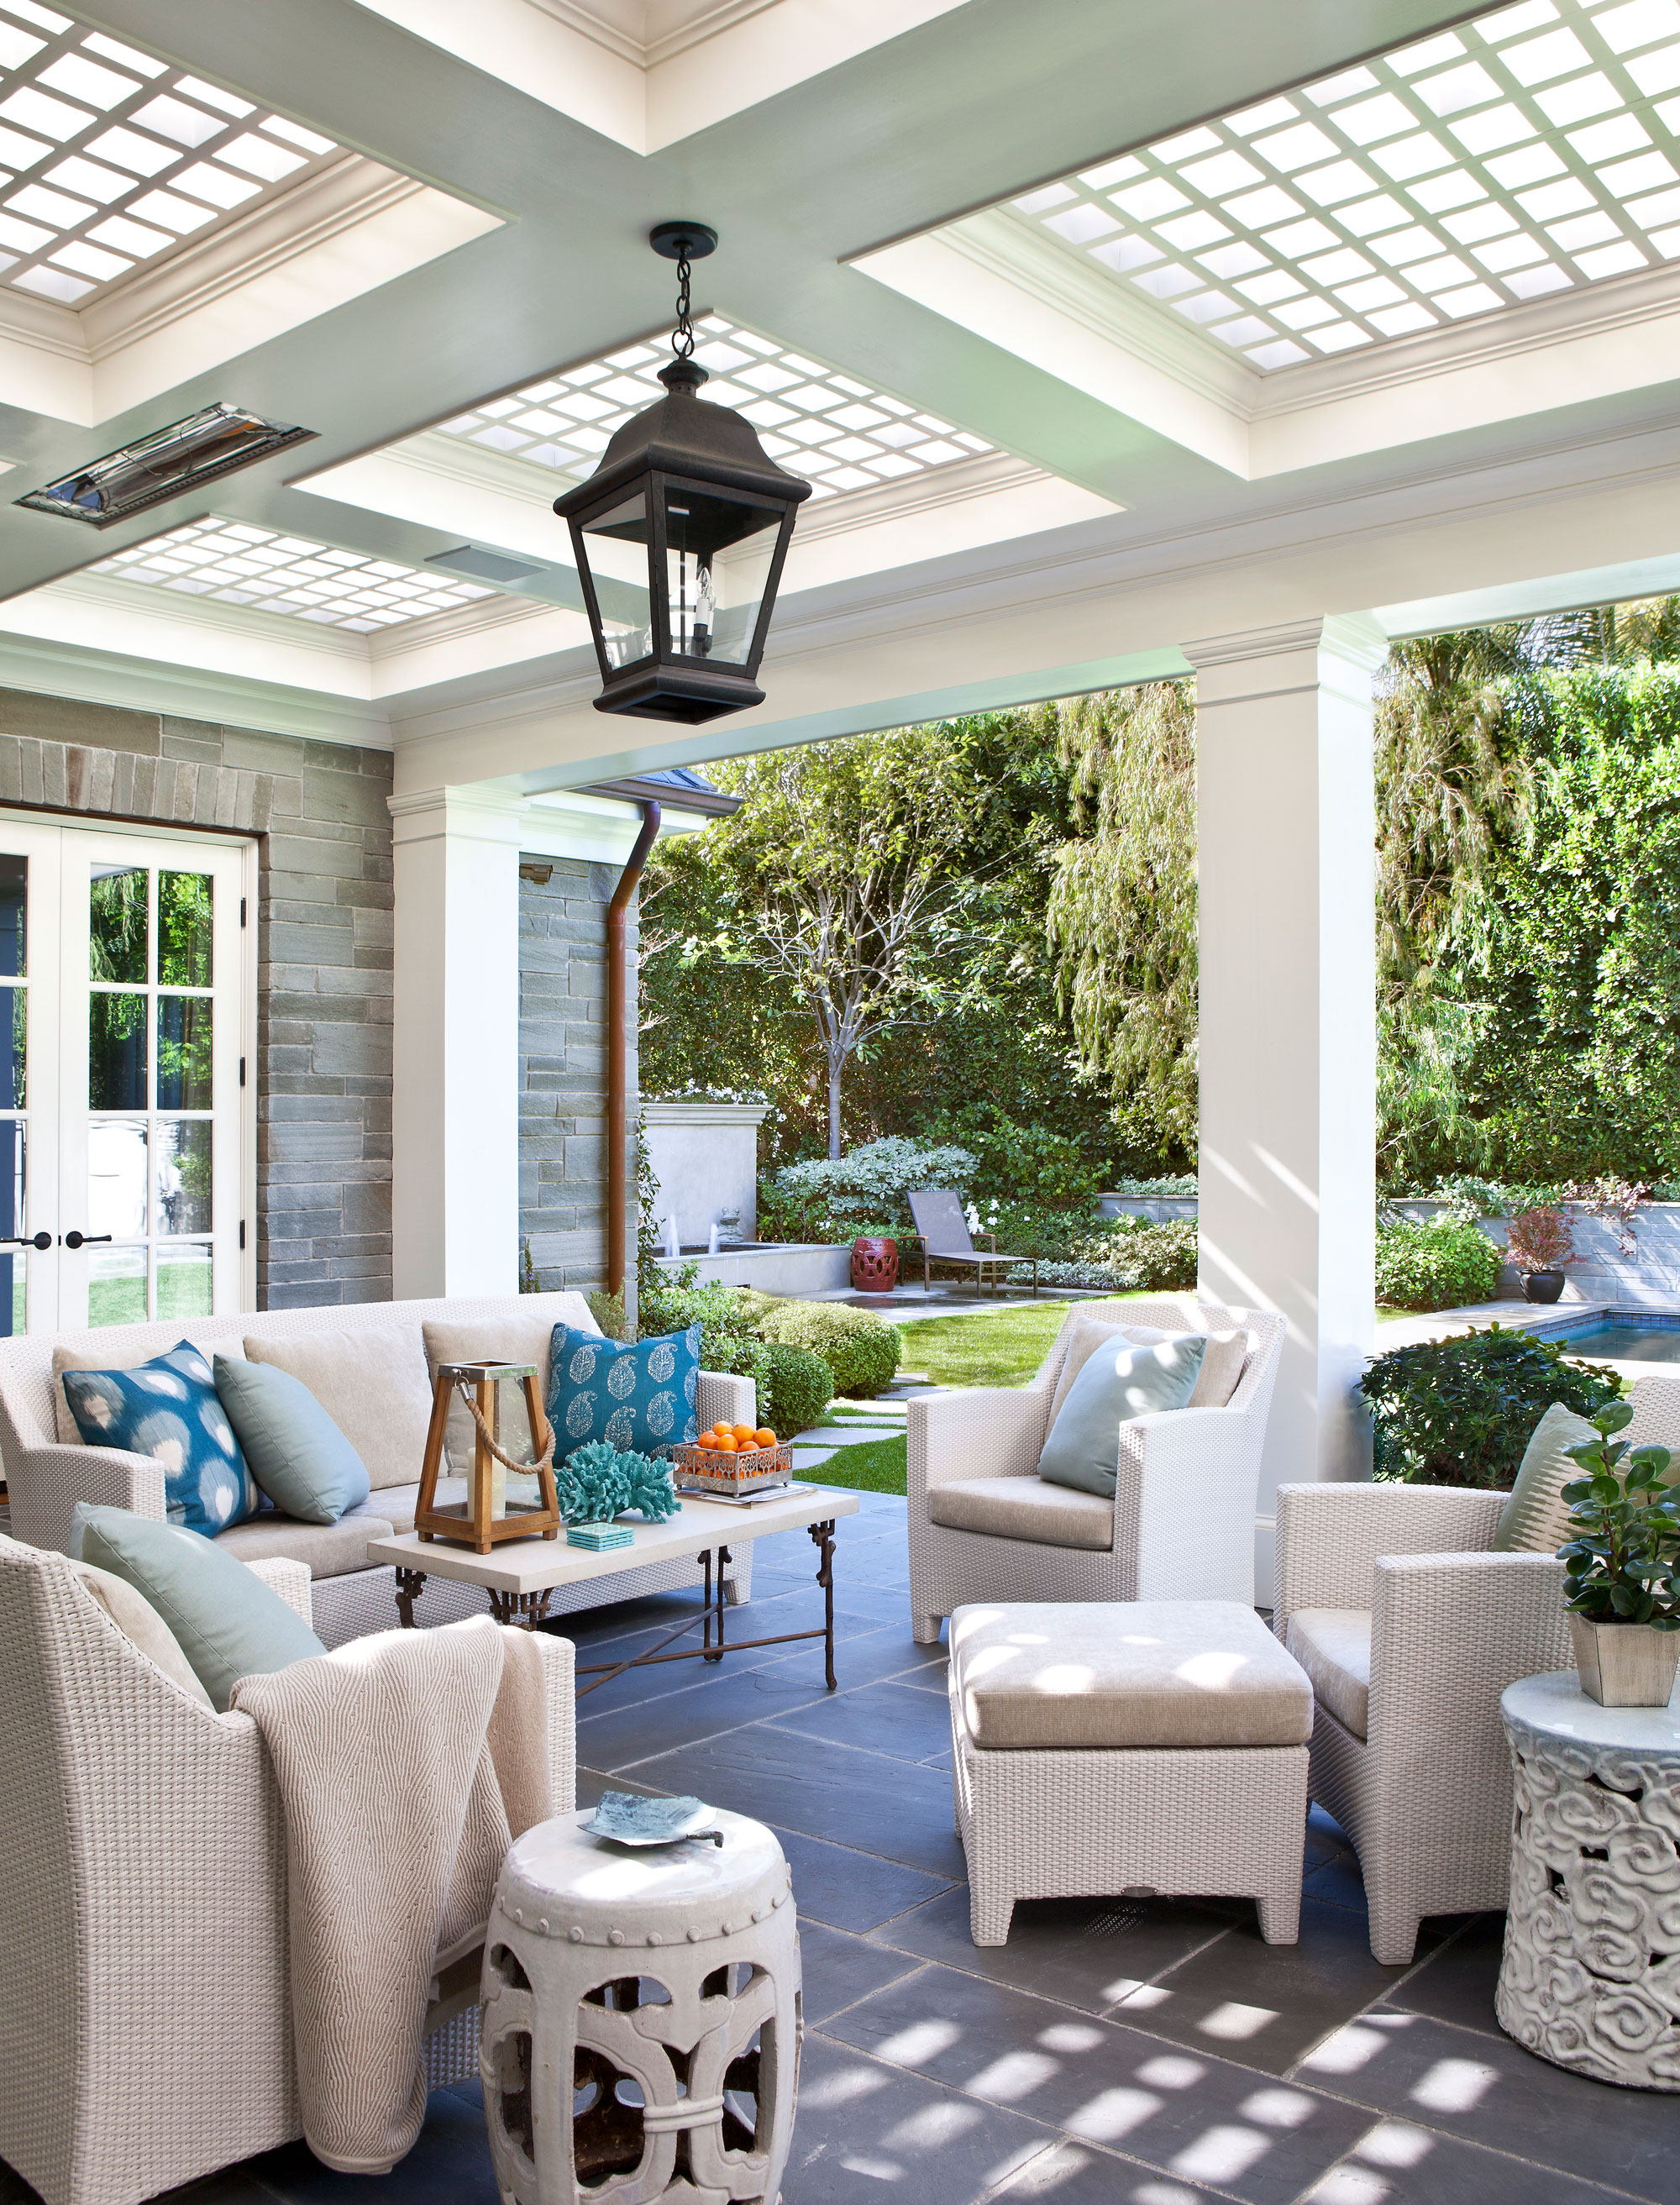 loggia-outdoor-dining-rear-patio-traditional-stone-house-ward-jewell.jpg